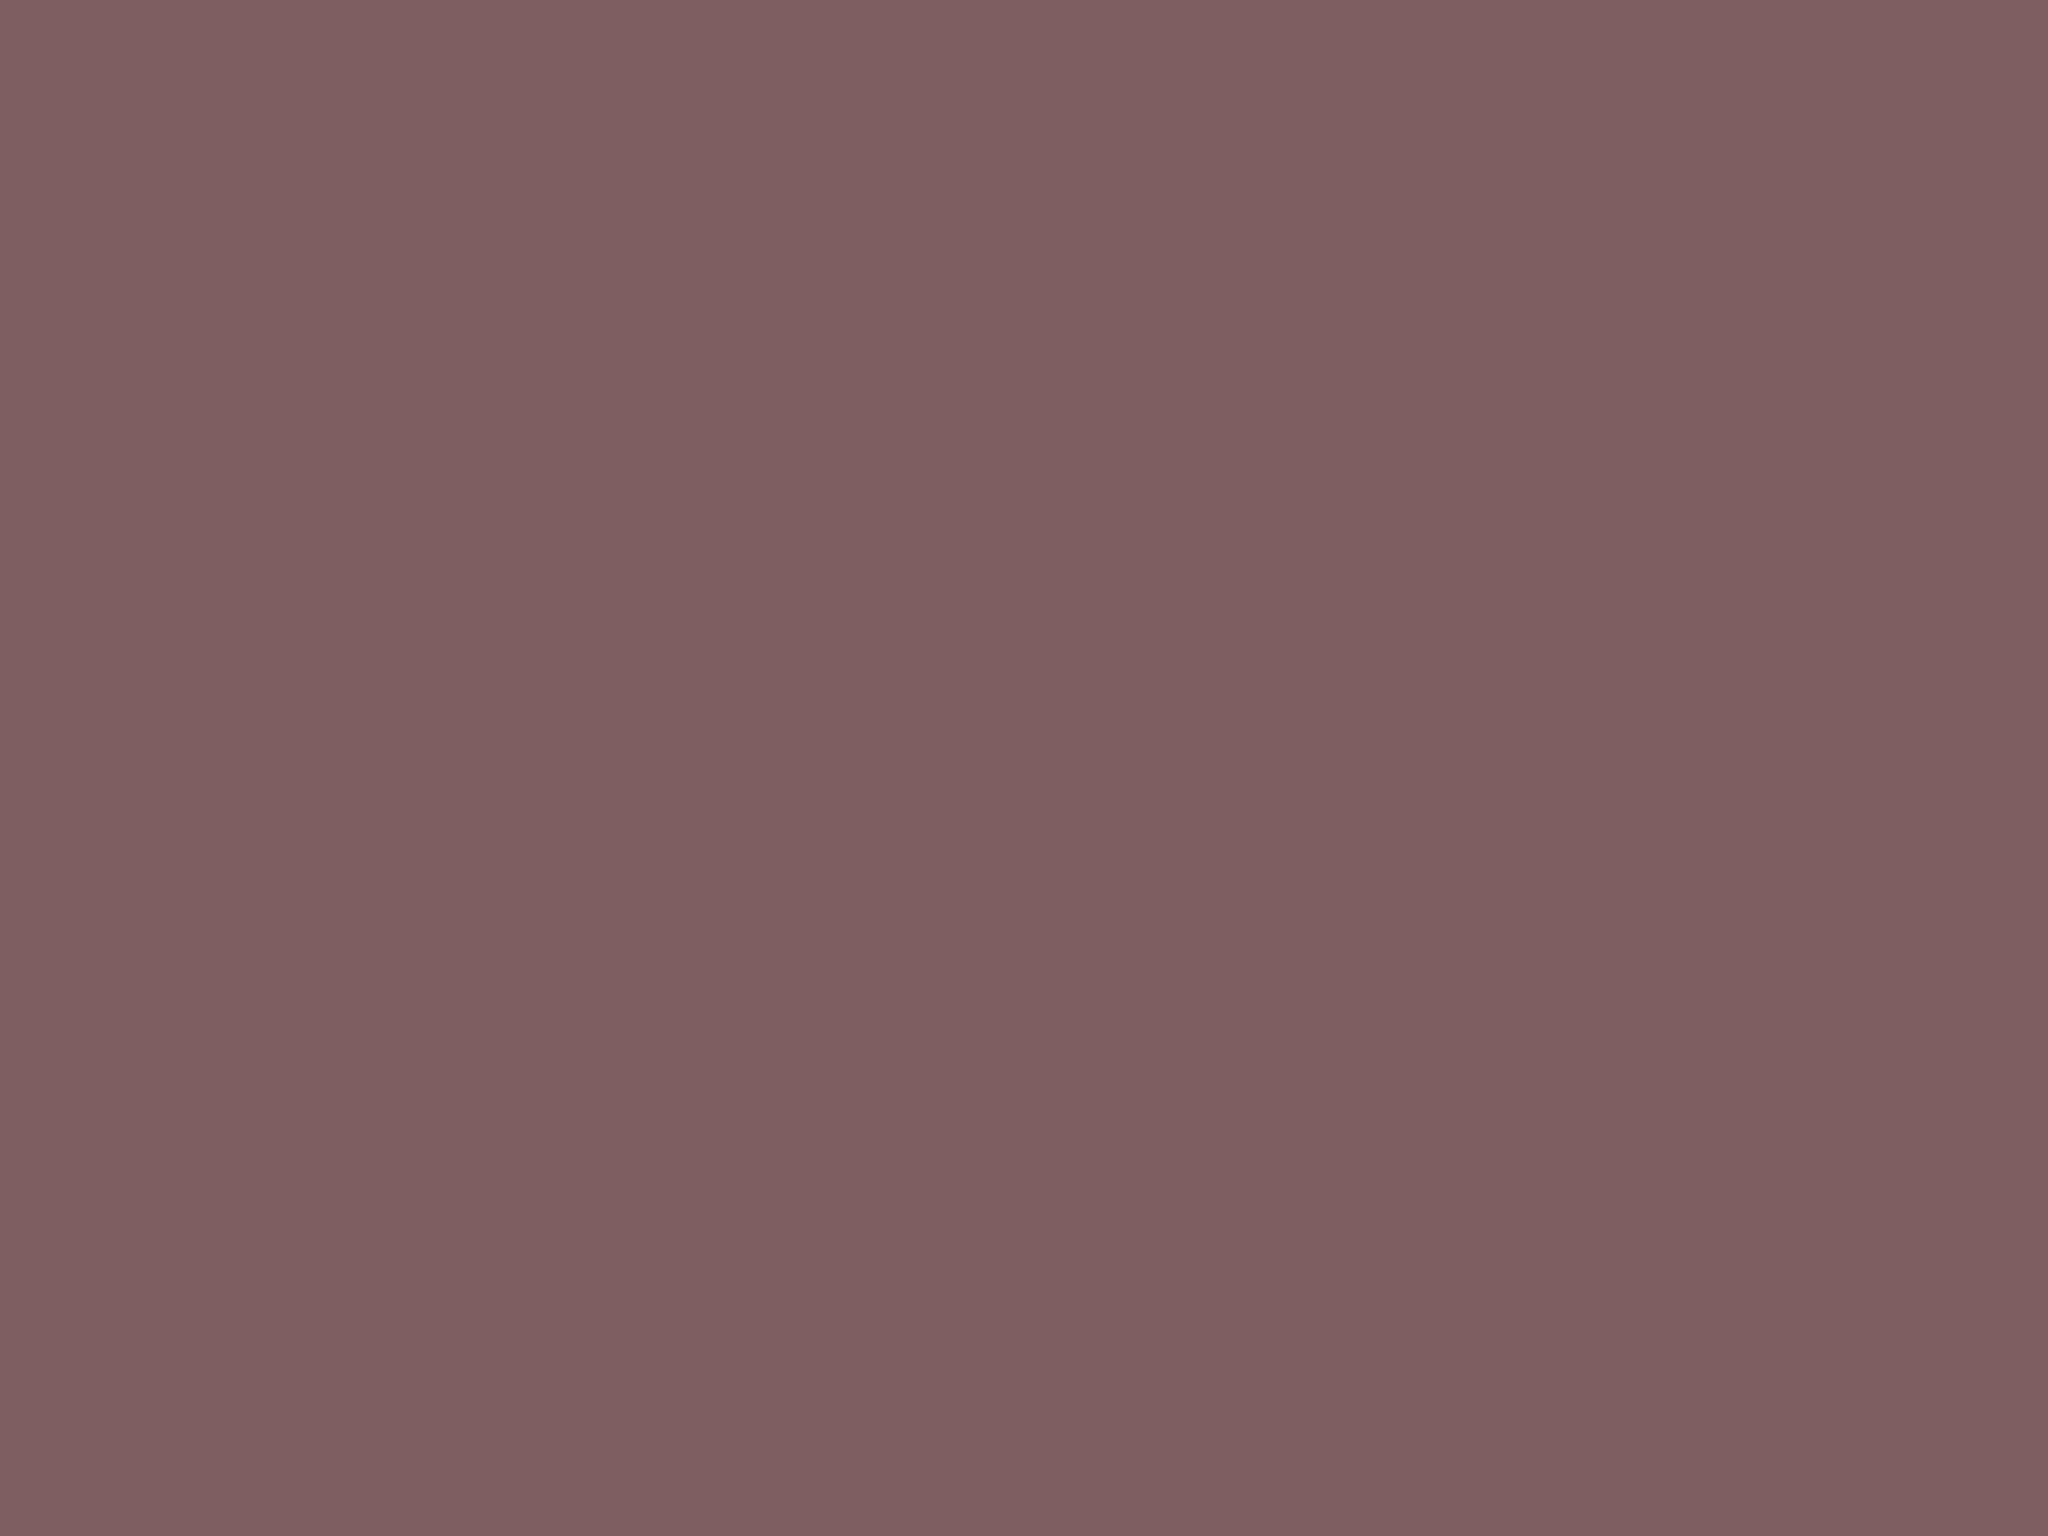 2048x1536 Deep Taupe Solid Color Background